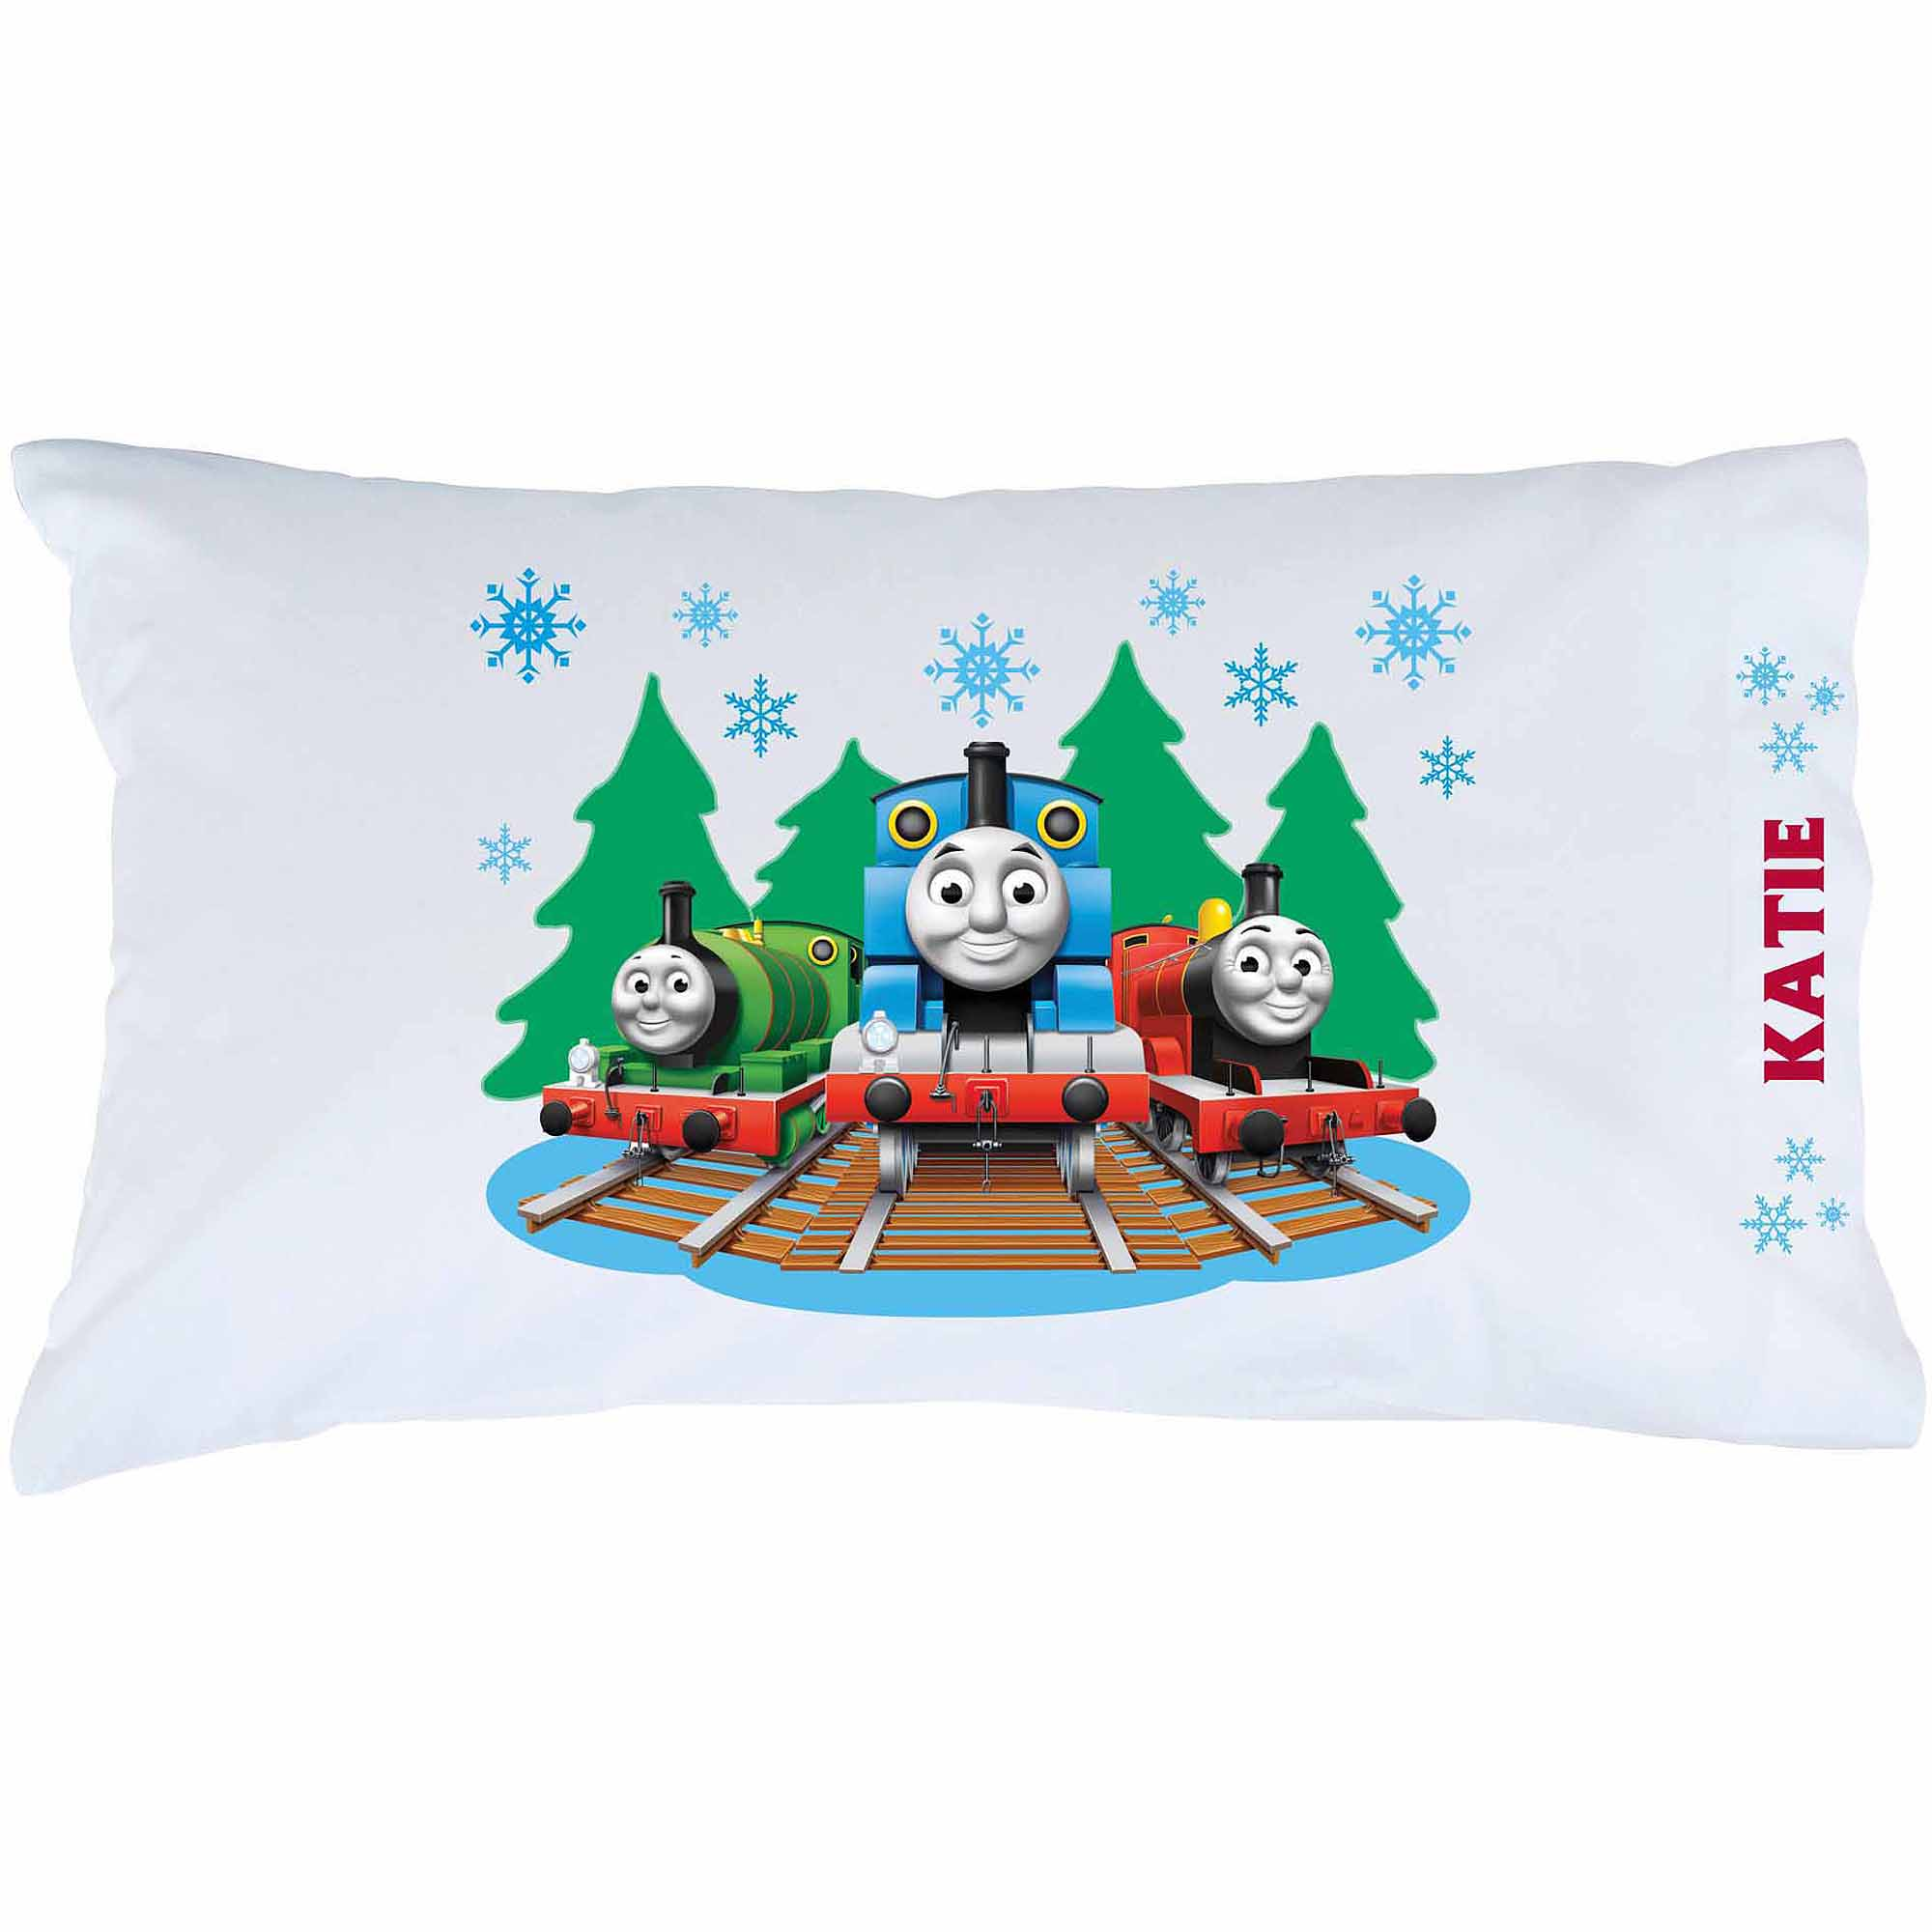 Personalized Thomas & Friends Snowfall Pillowcase